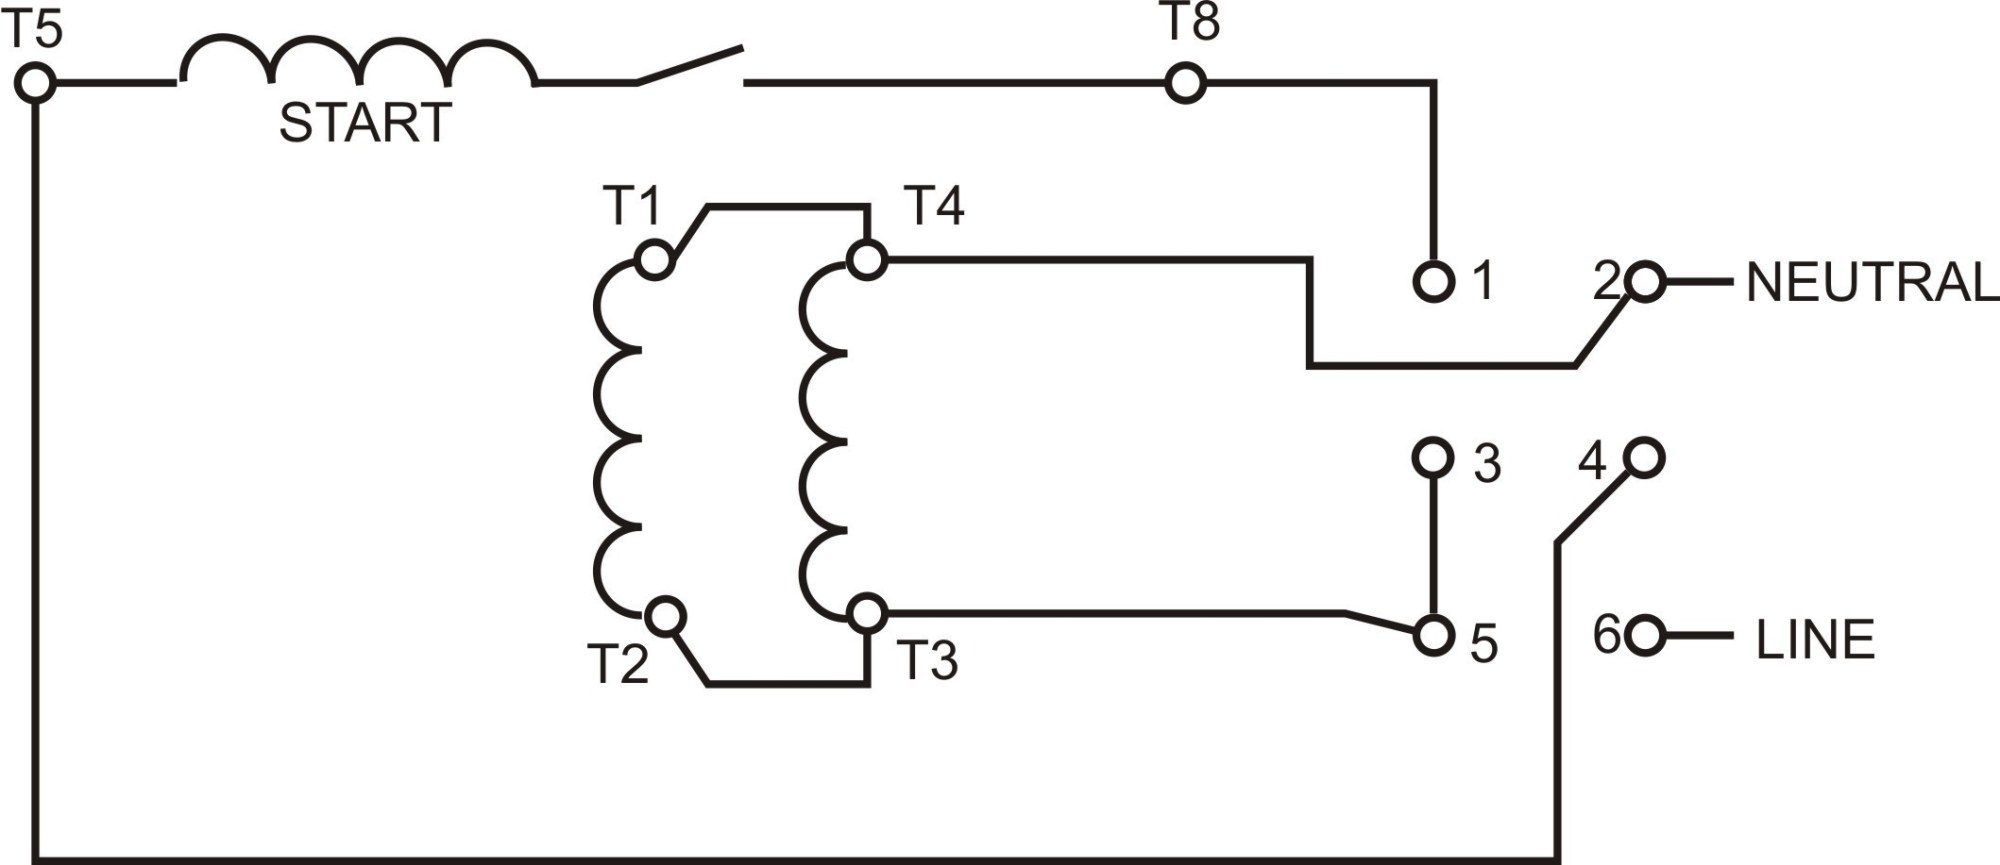 hight resolution of 110 220 single phase motor wiring diagram wiring diagram explained 110 220 motor wiring diagram six leads 110 220 motor wiring diagram